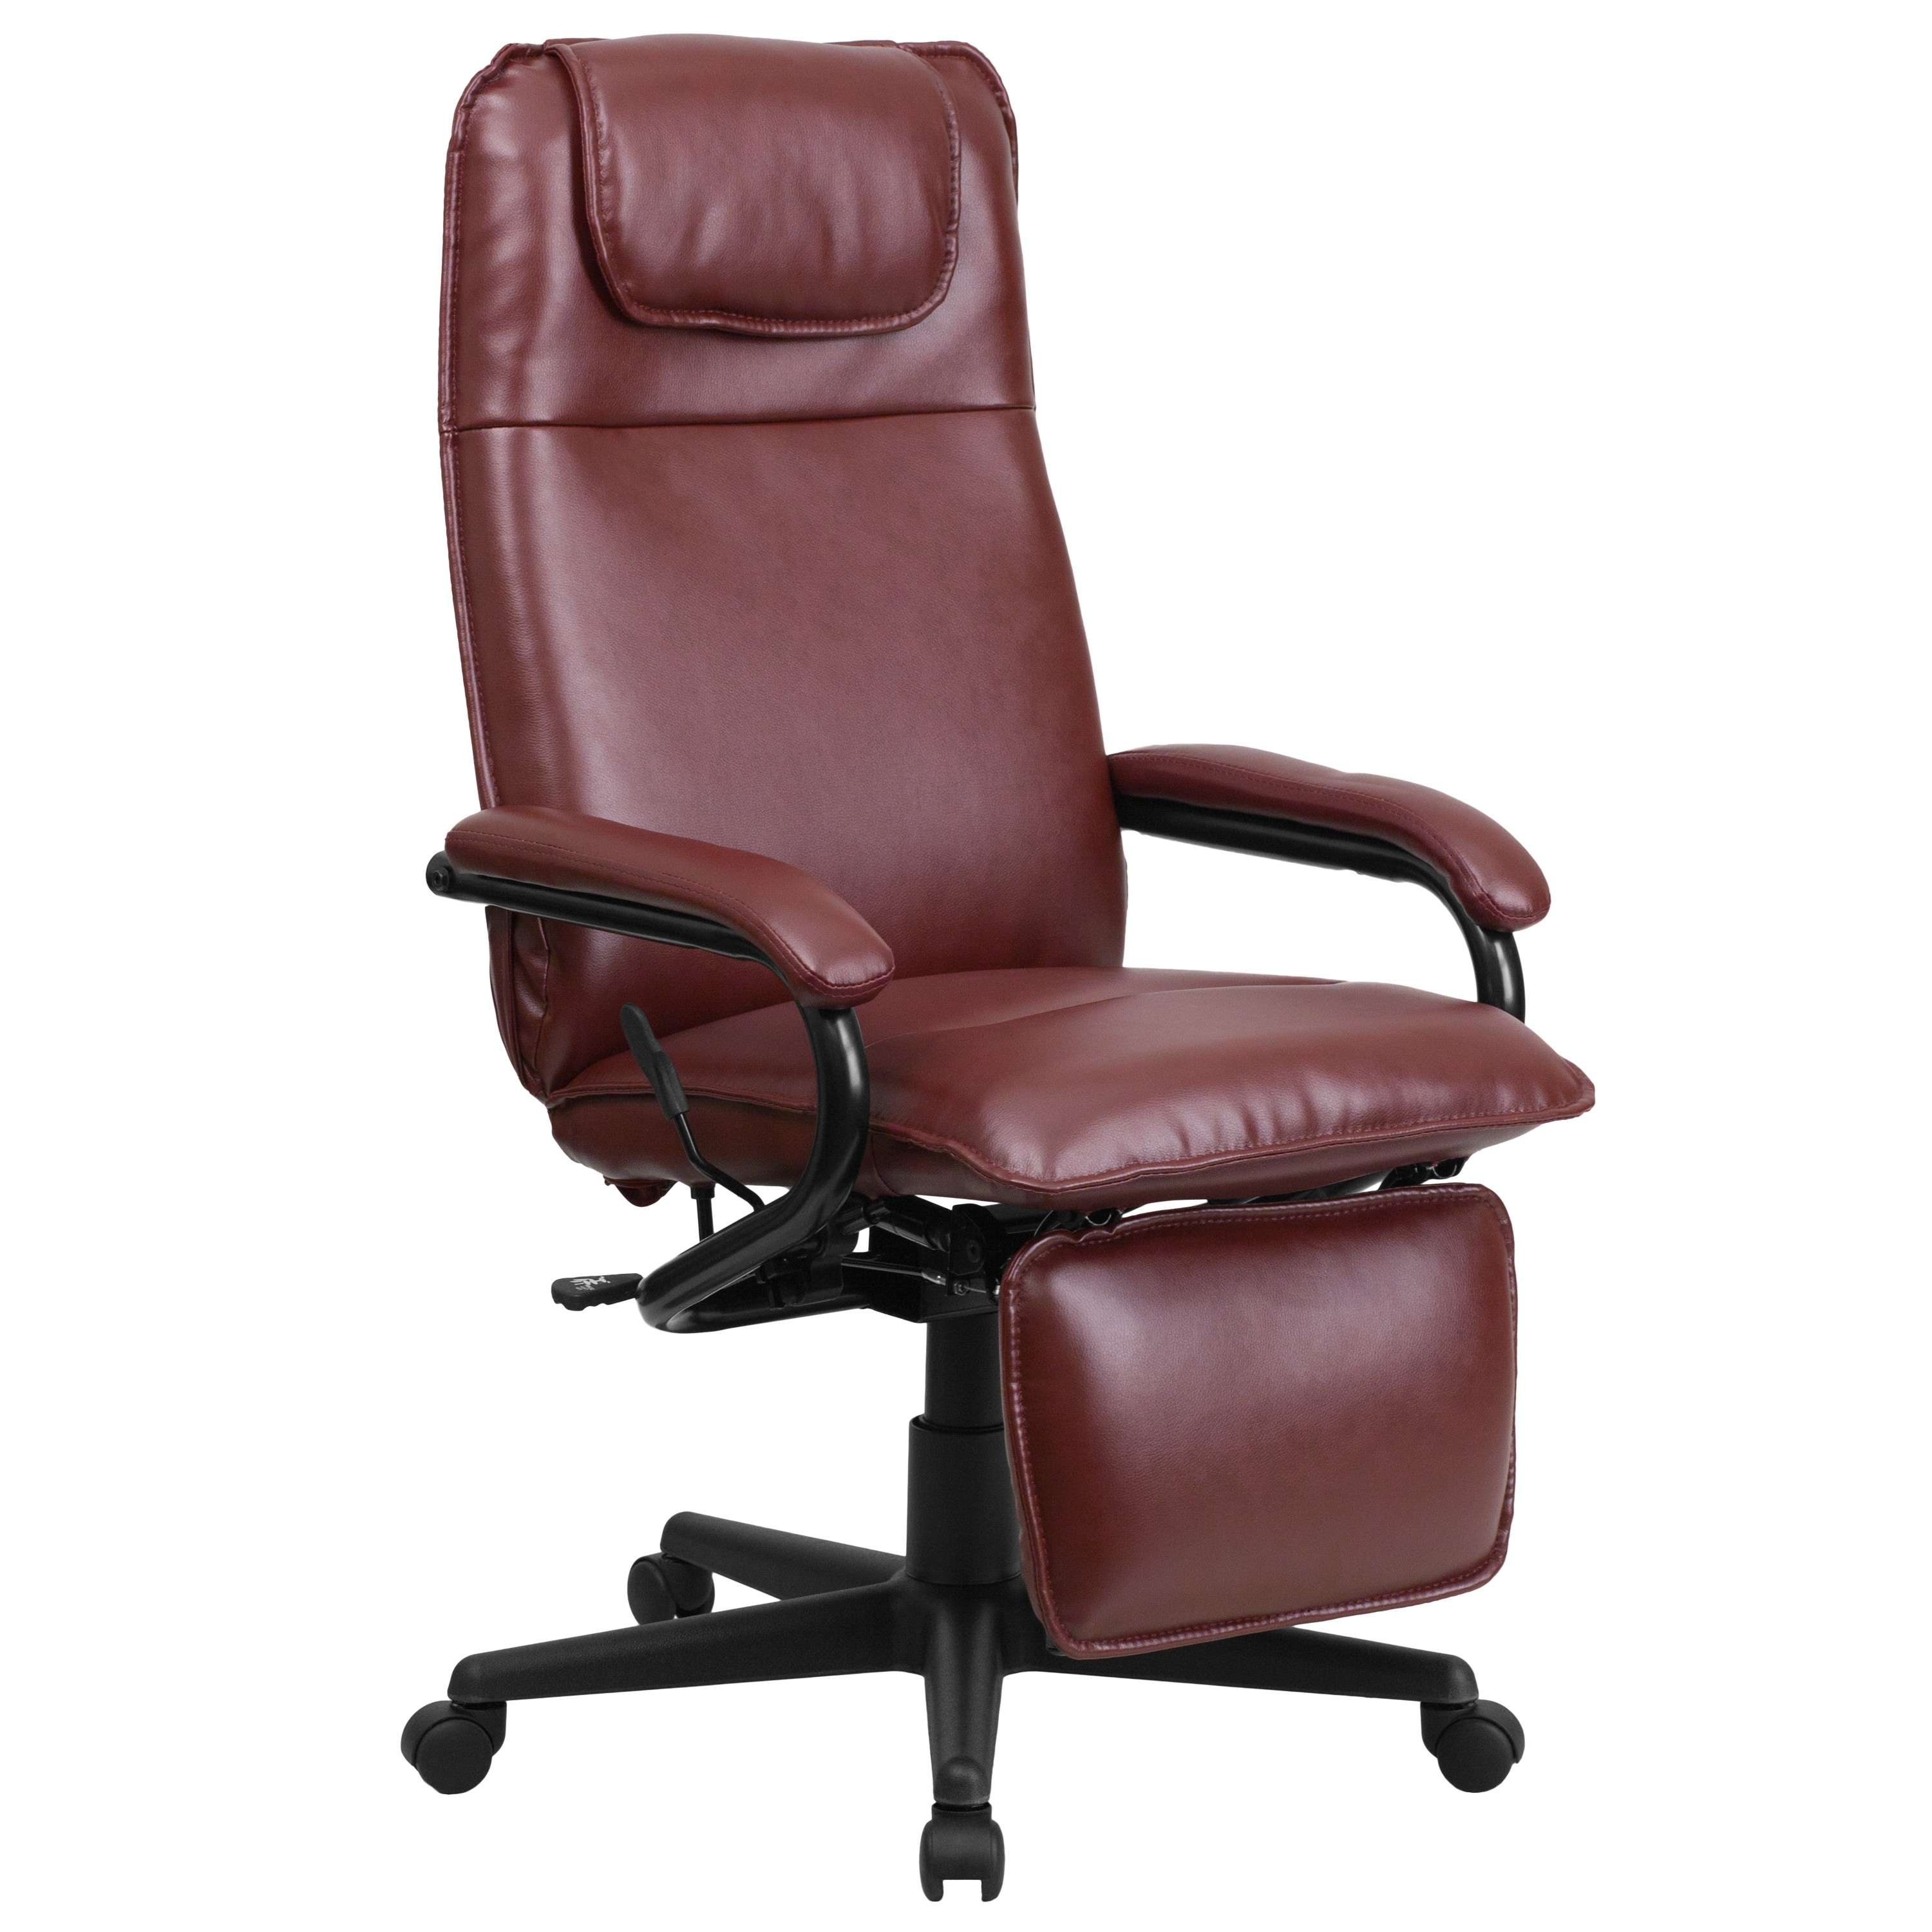 MFO High Back Burgundy Leather Executive Reclining fice Chair